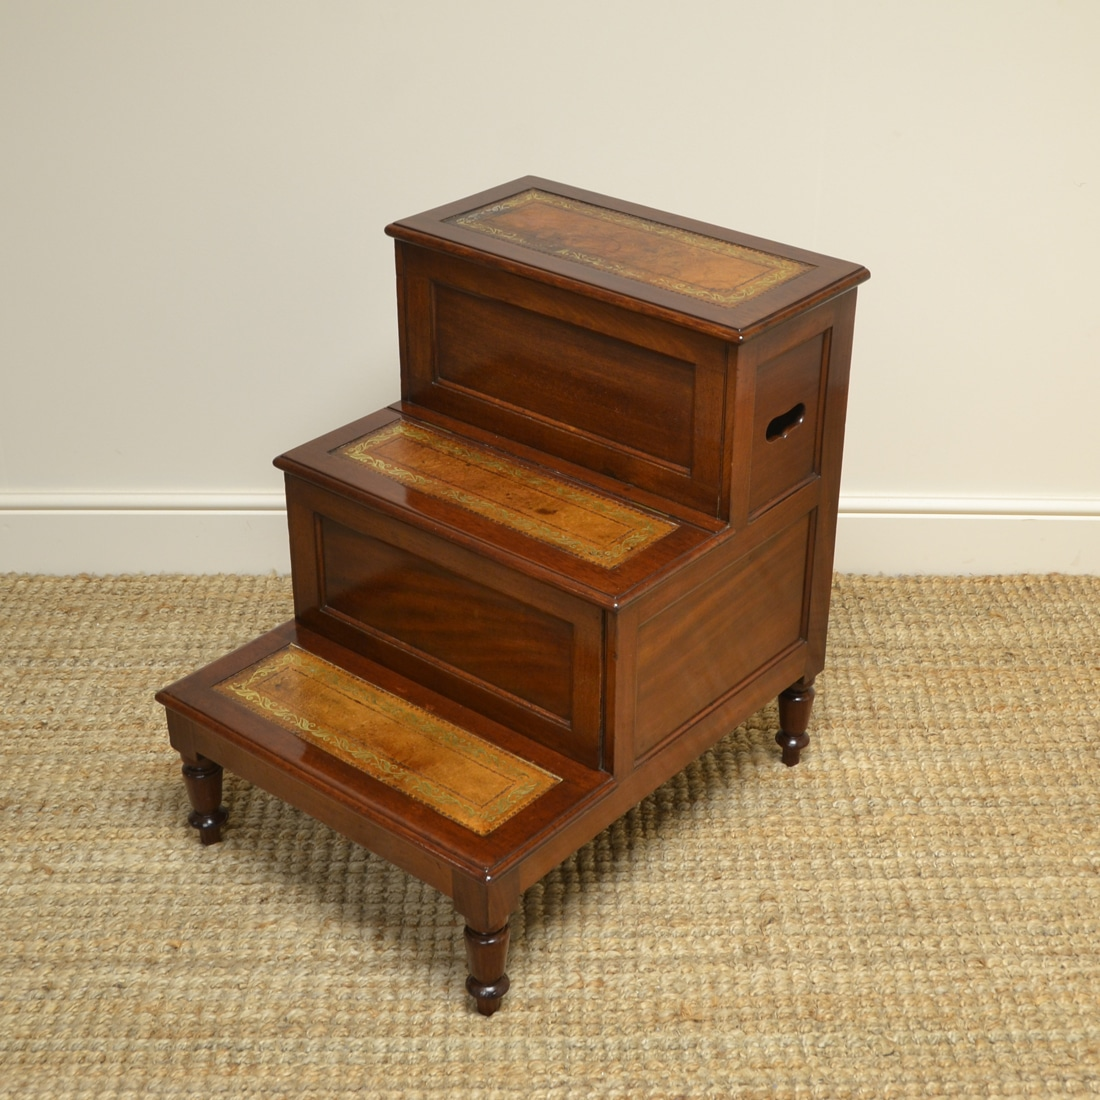 High Quality Regency Mahogany Antique Library Steps – Lodge & Co